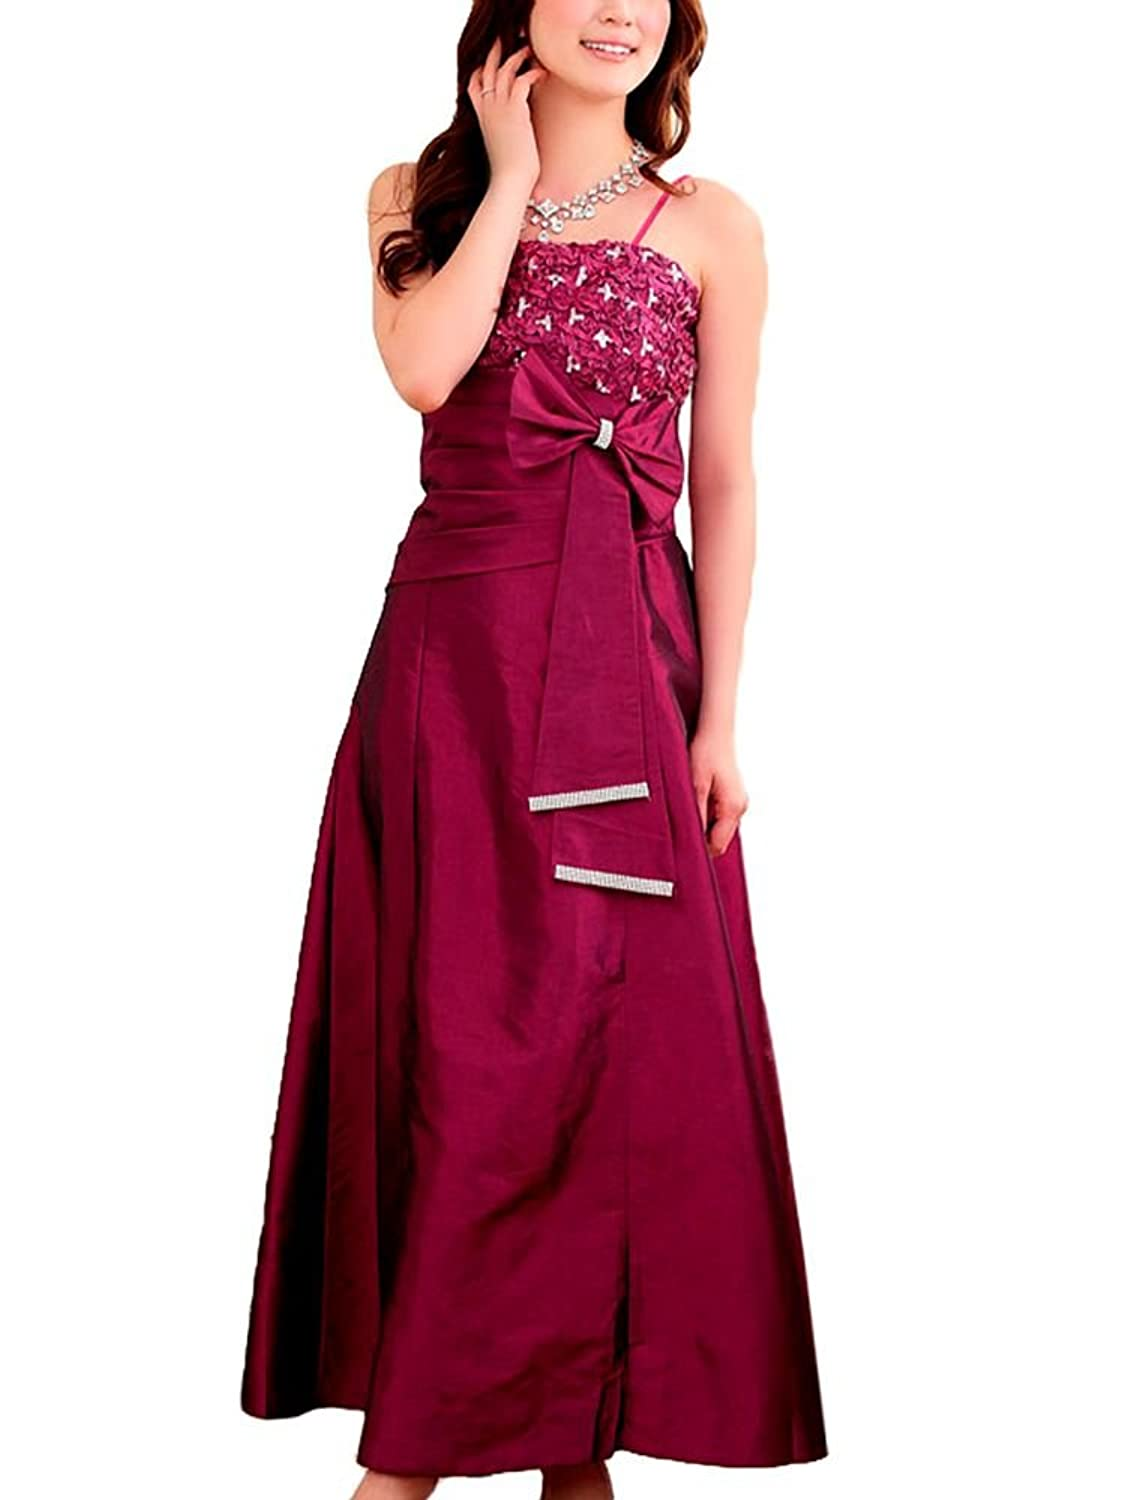 VIP Dress Long Satin Evening Gown in green, beige and raspberry